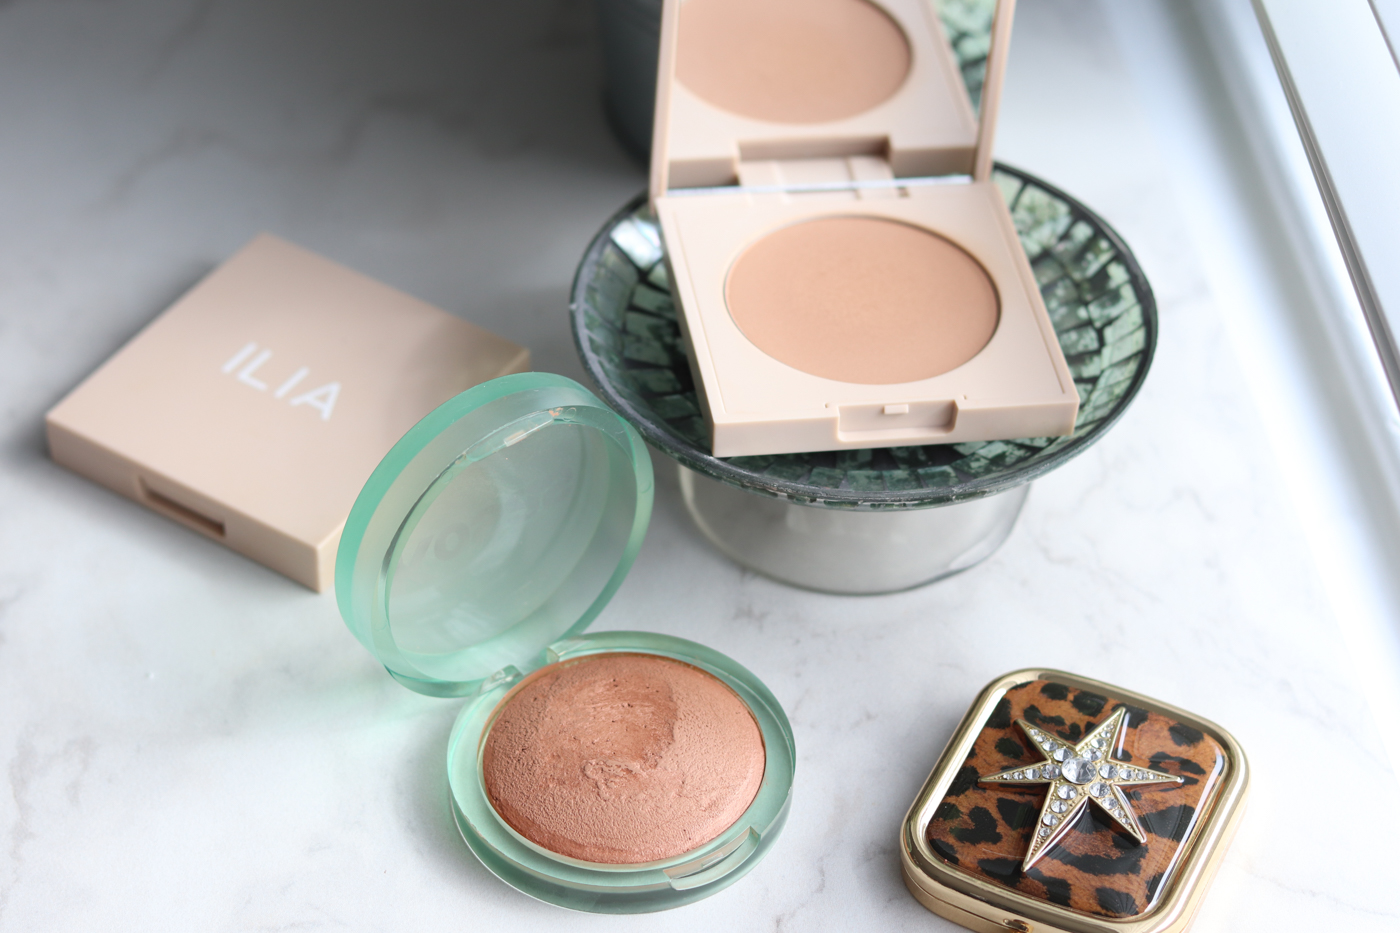 KOSAS Bronzer vs ILIA Bronzer | Which clean bronzer is better?